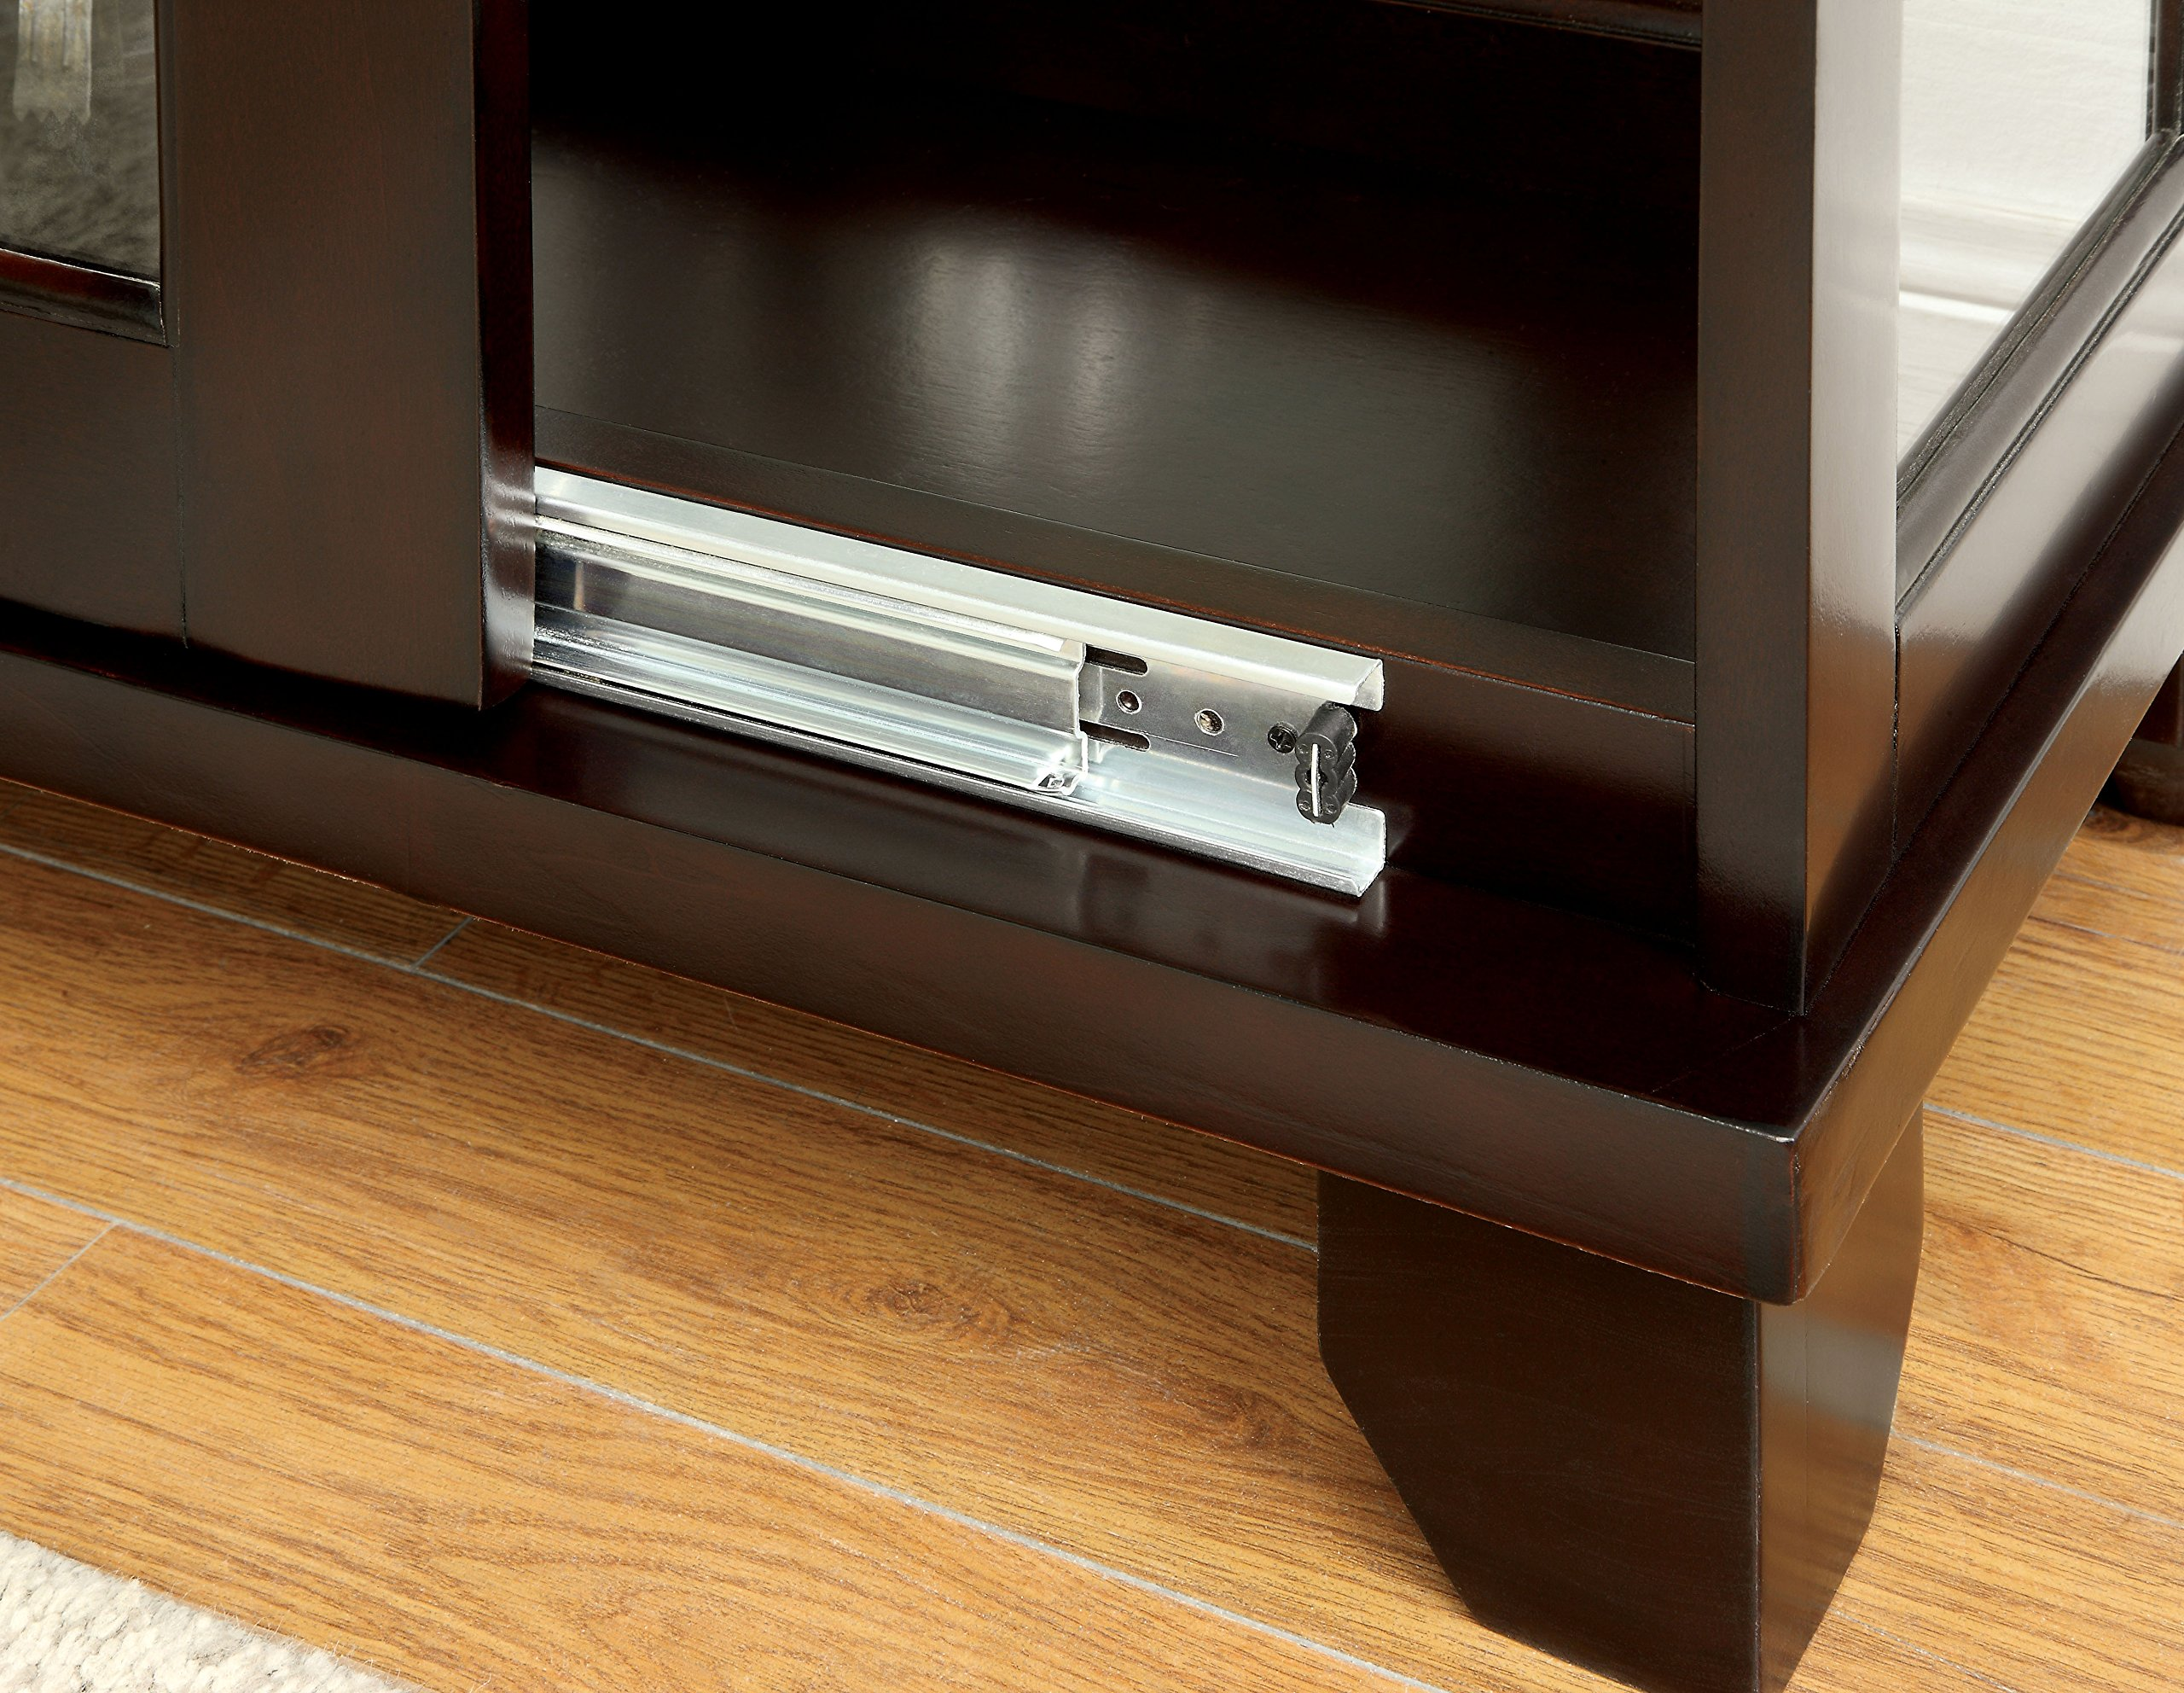 HOMES: Inside + Out Curio Alecie Cabinet with Built In Light, Dark Walnut by HOMES: Inside + Out